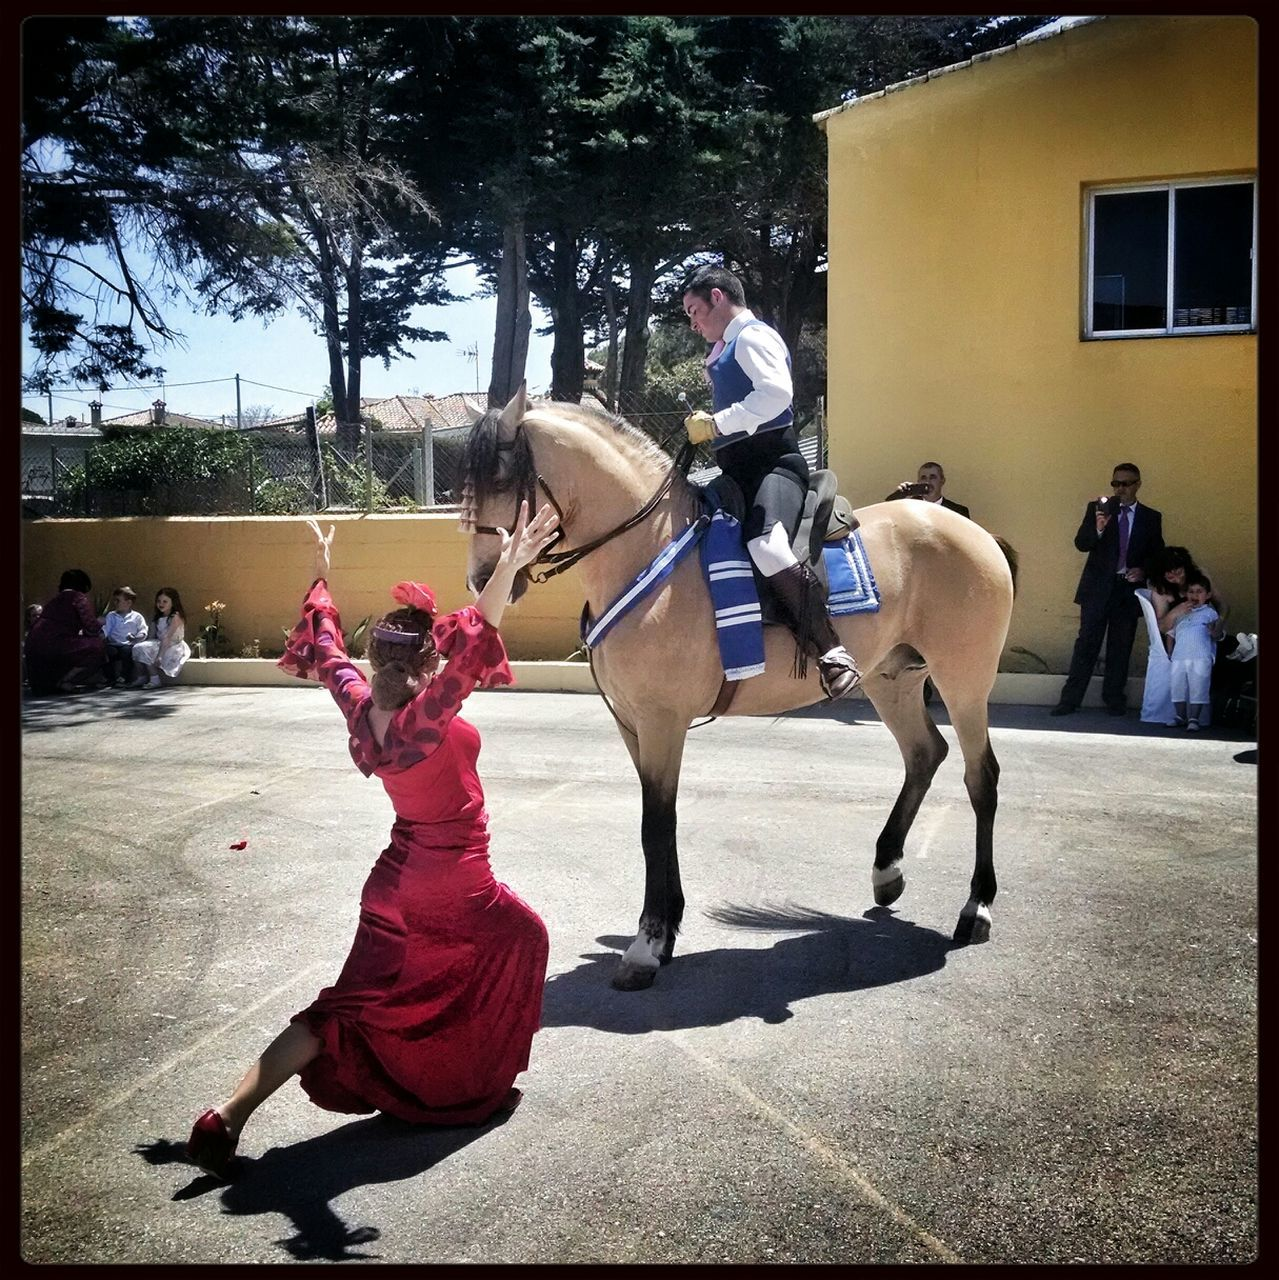 real people, domestic animals, horse, mammal, men, horseback riding, day, outdoors, full length, lifestyles, women, building exterior, tree, adult, people